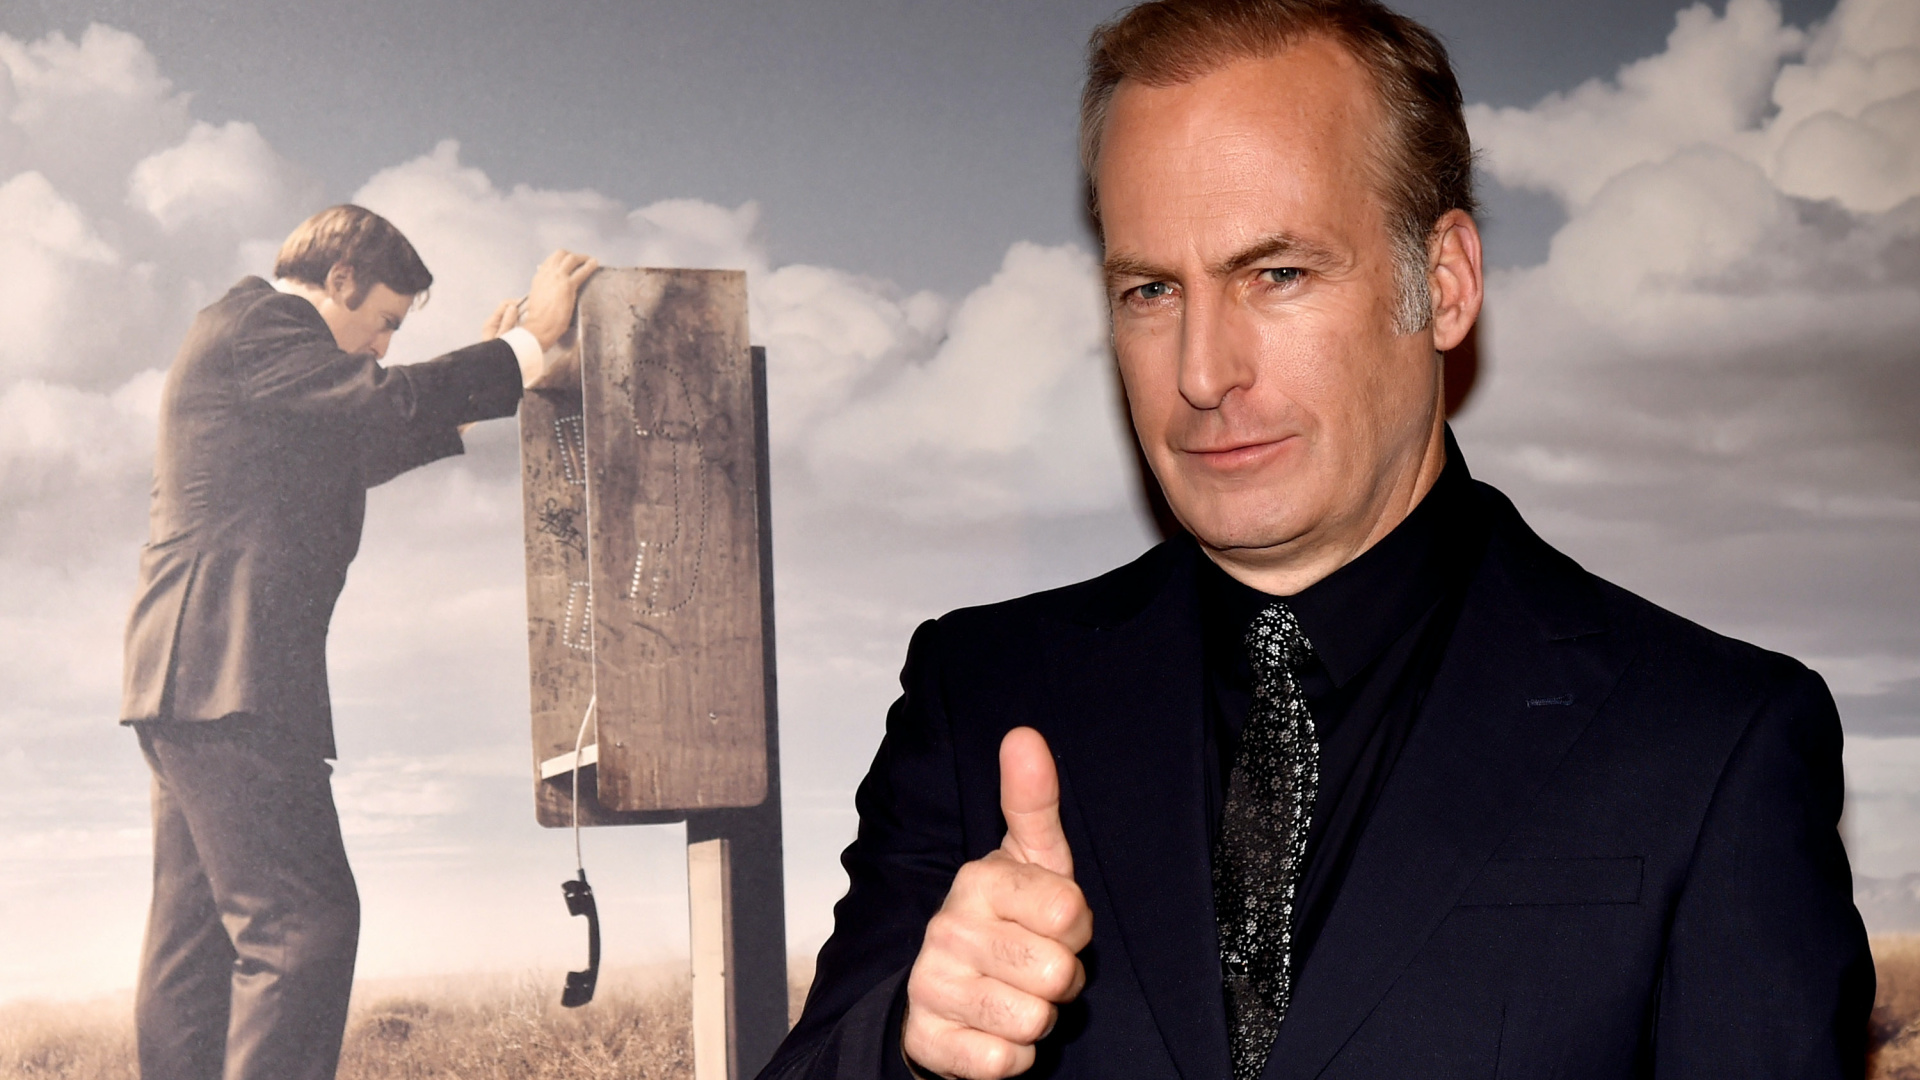 Bob Odenkirk takes to social media to update fans on health scare